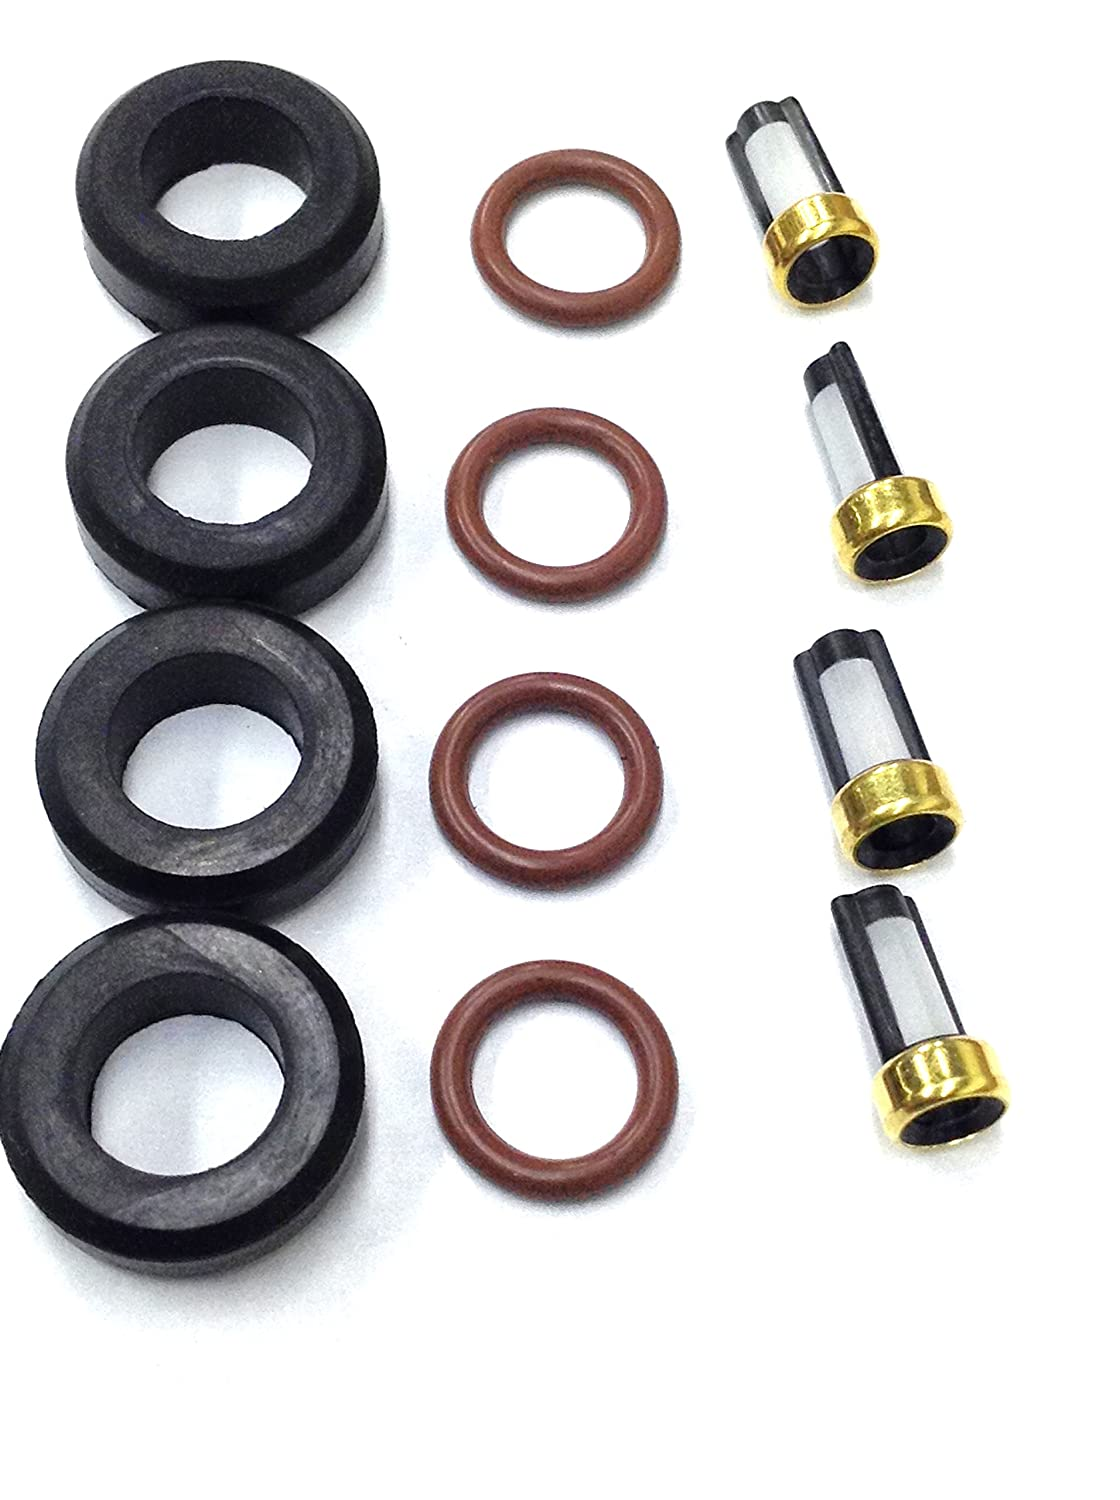 UREMCO 8-4 Fuel Injector Seal Kit, 1 Pack